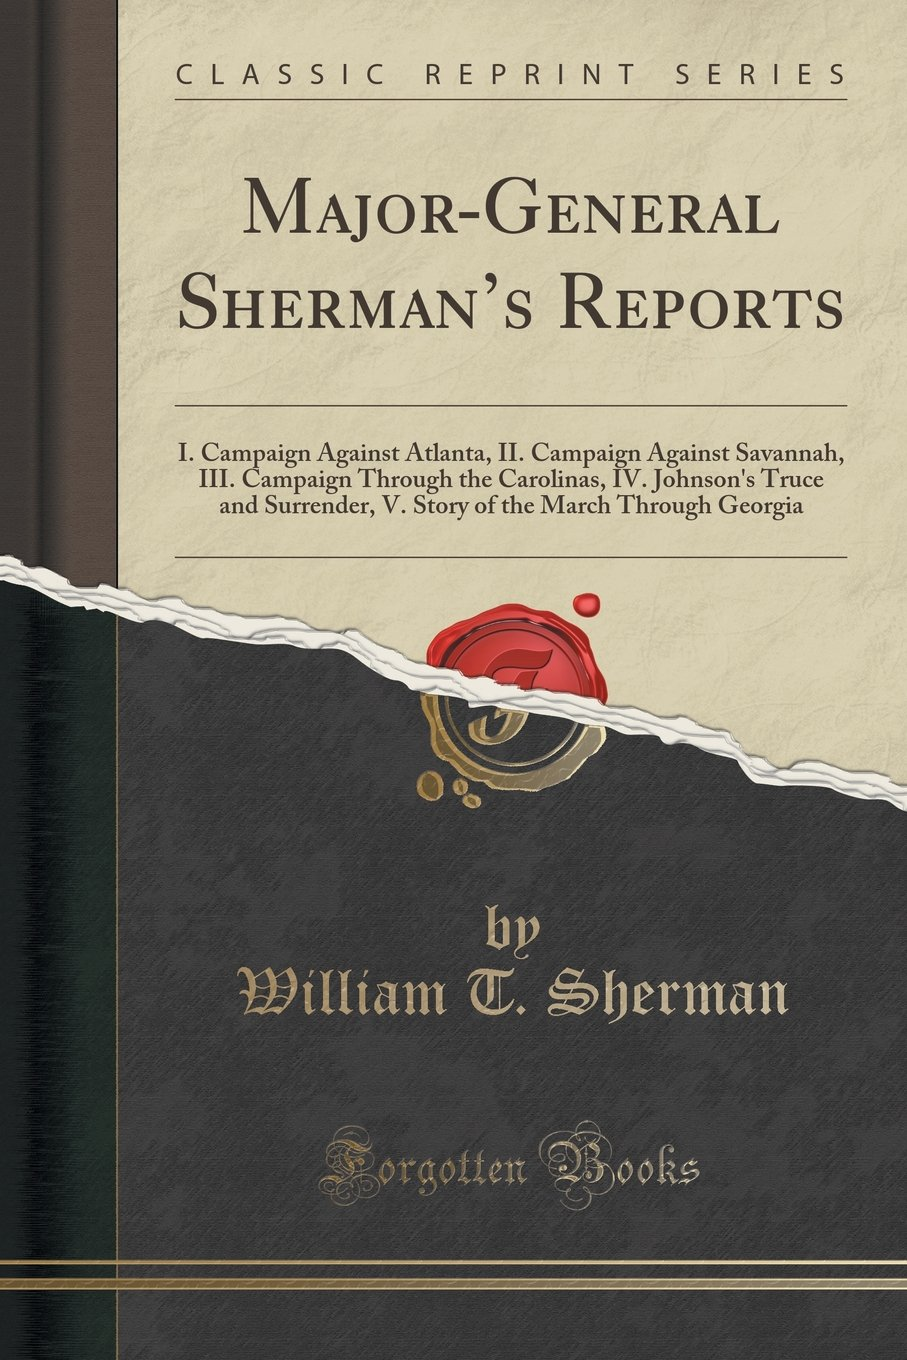 Major-General Sherman's Reports: I. Campaign Against Atlanta, II. Campaign Against Savannah, III. Campaign Through the Carolinas, IV. Johnson's Truce ... the March Through Georgia (Classic Reprint) ebook